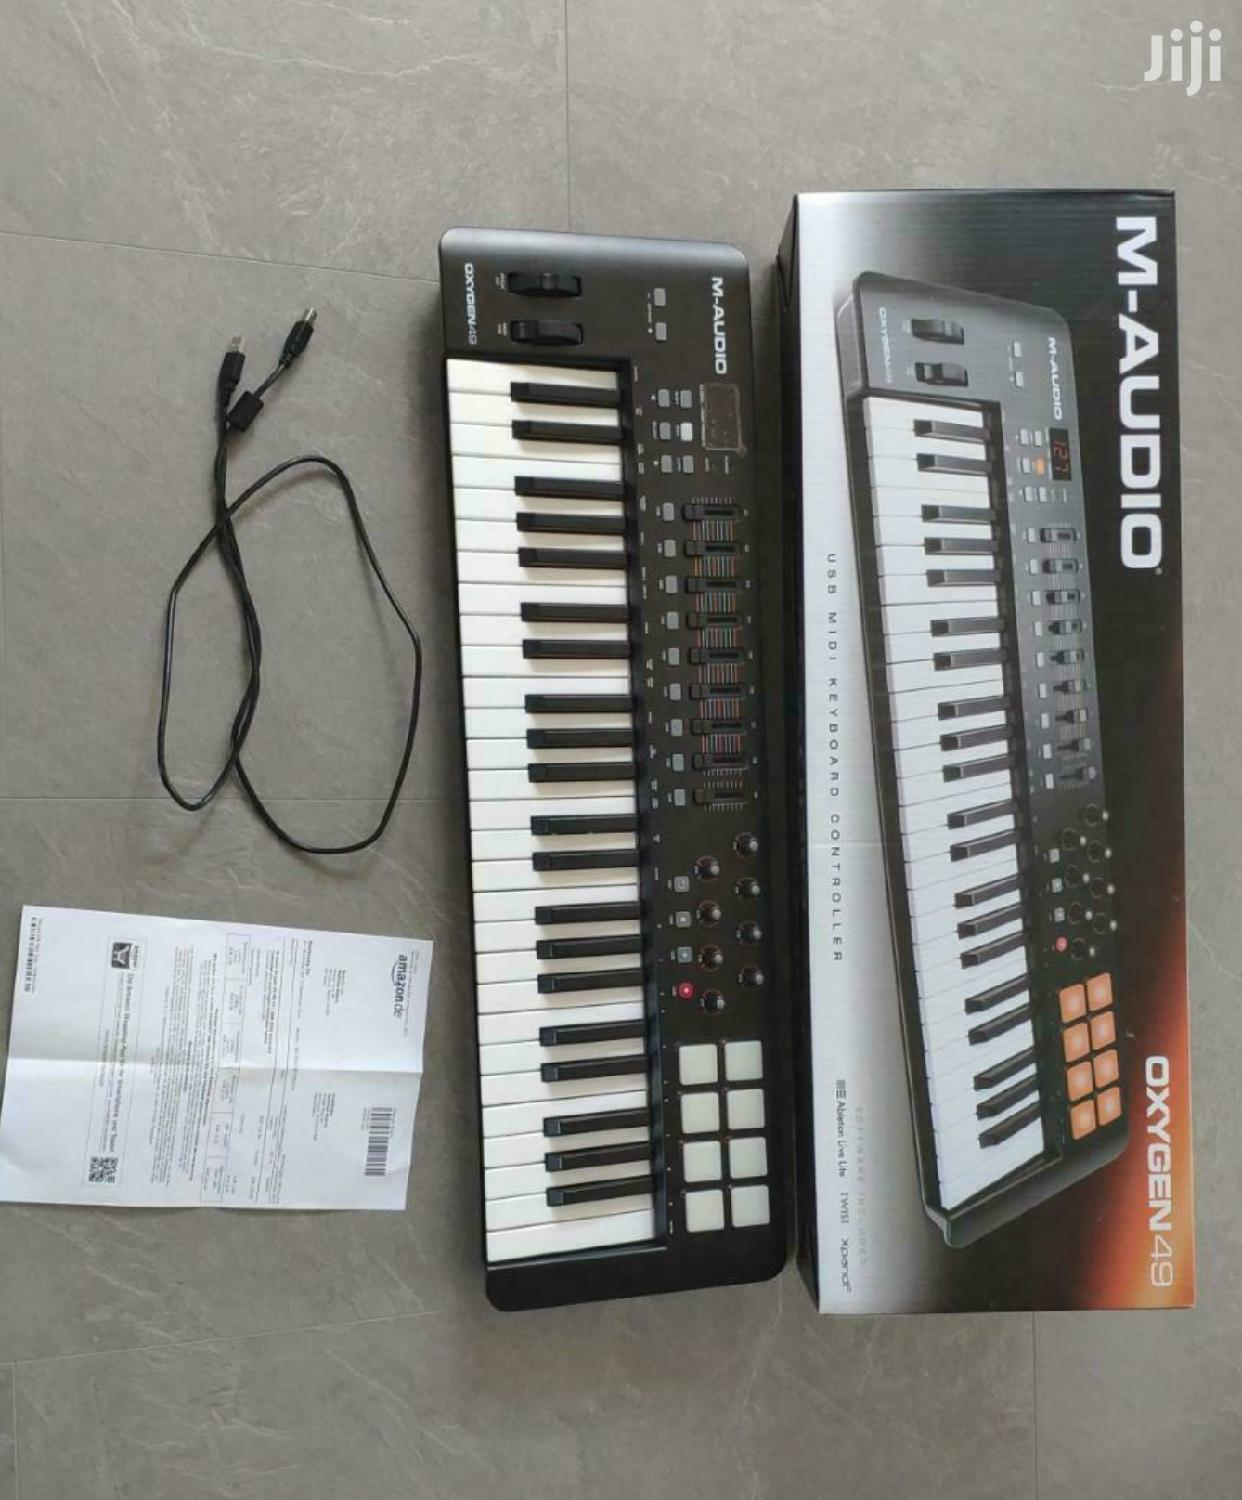 M-Audio Oxygen 49 Midi Keyboard New Without Original Box | Musical Instruments & Gear for sale in Alajo, Greater Accra, Ghana